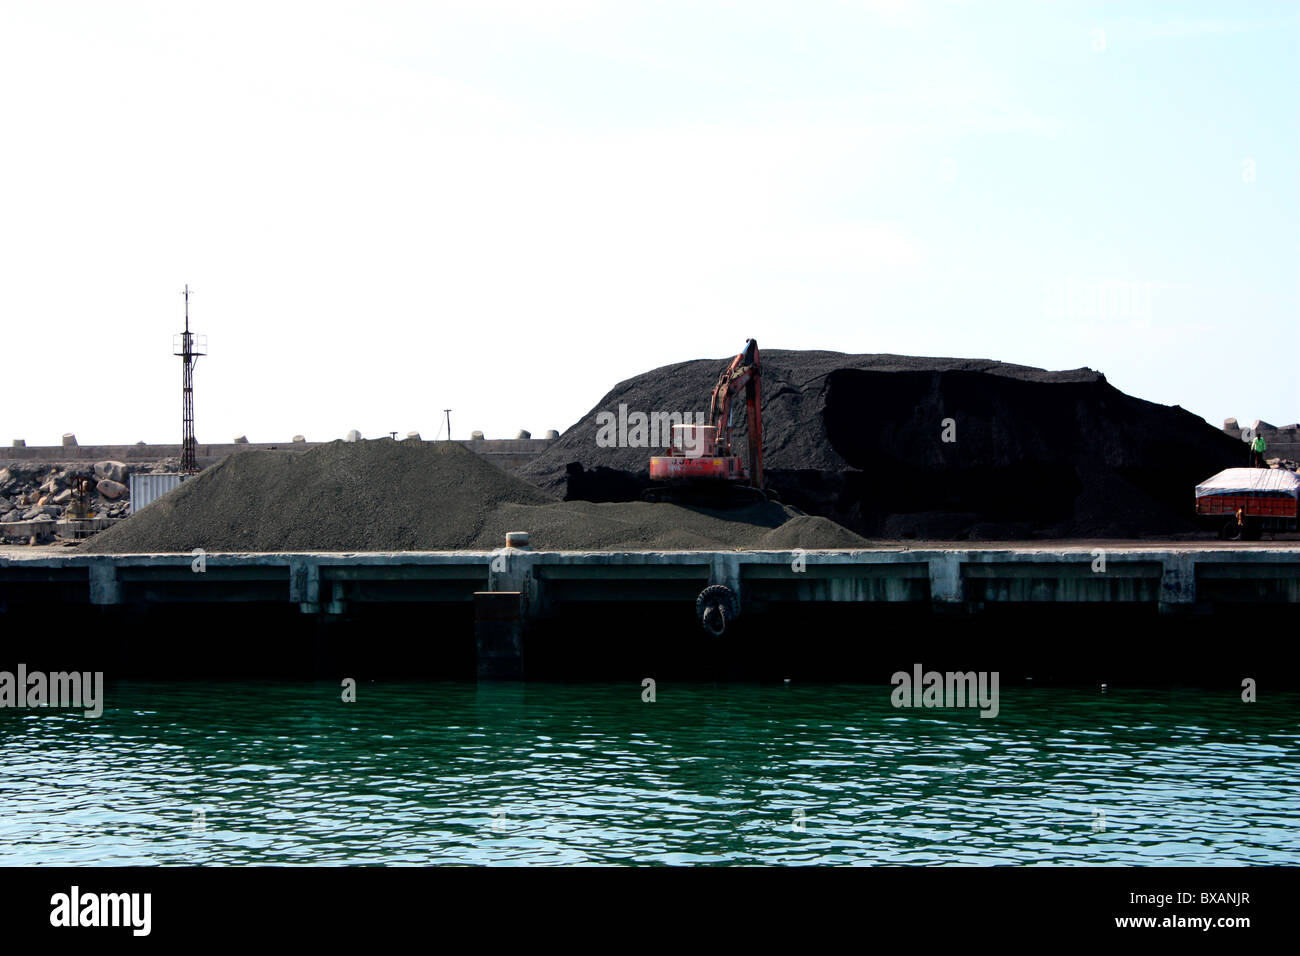 Dumping of iron ores at Porbandar port - Stock Image